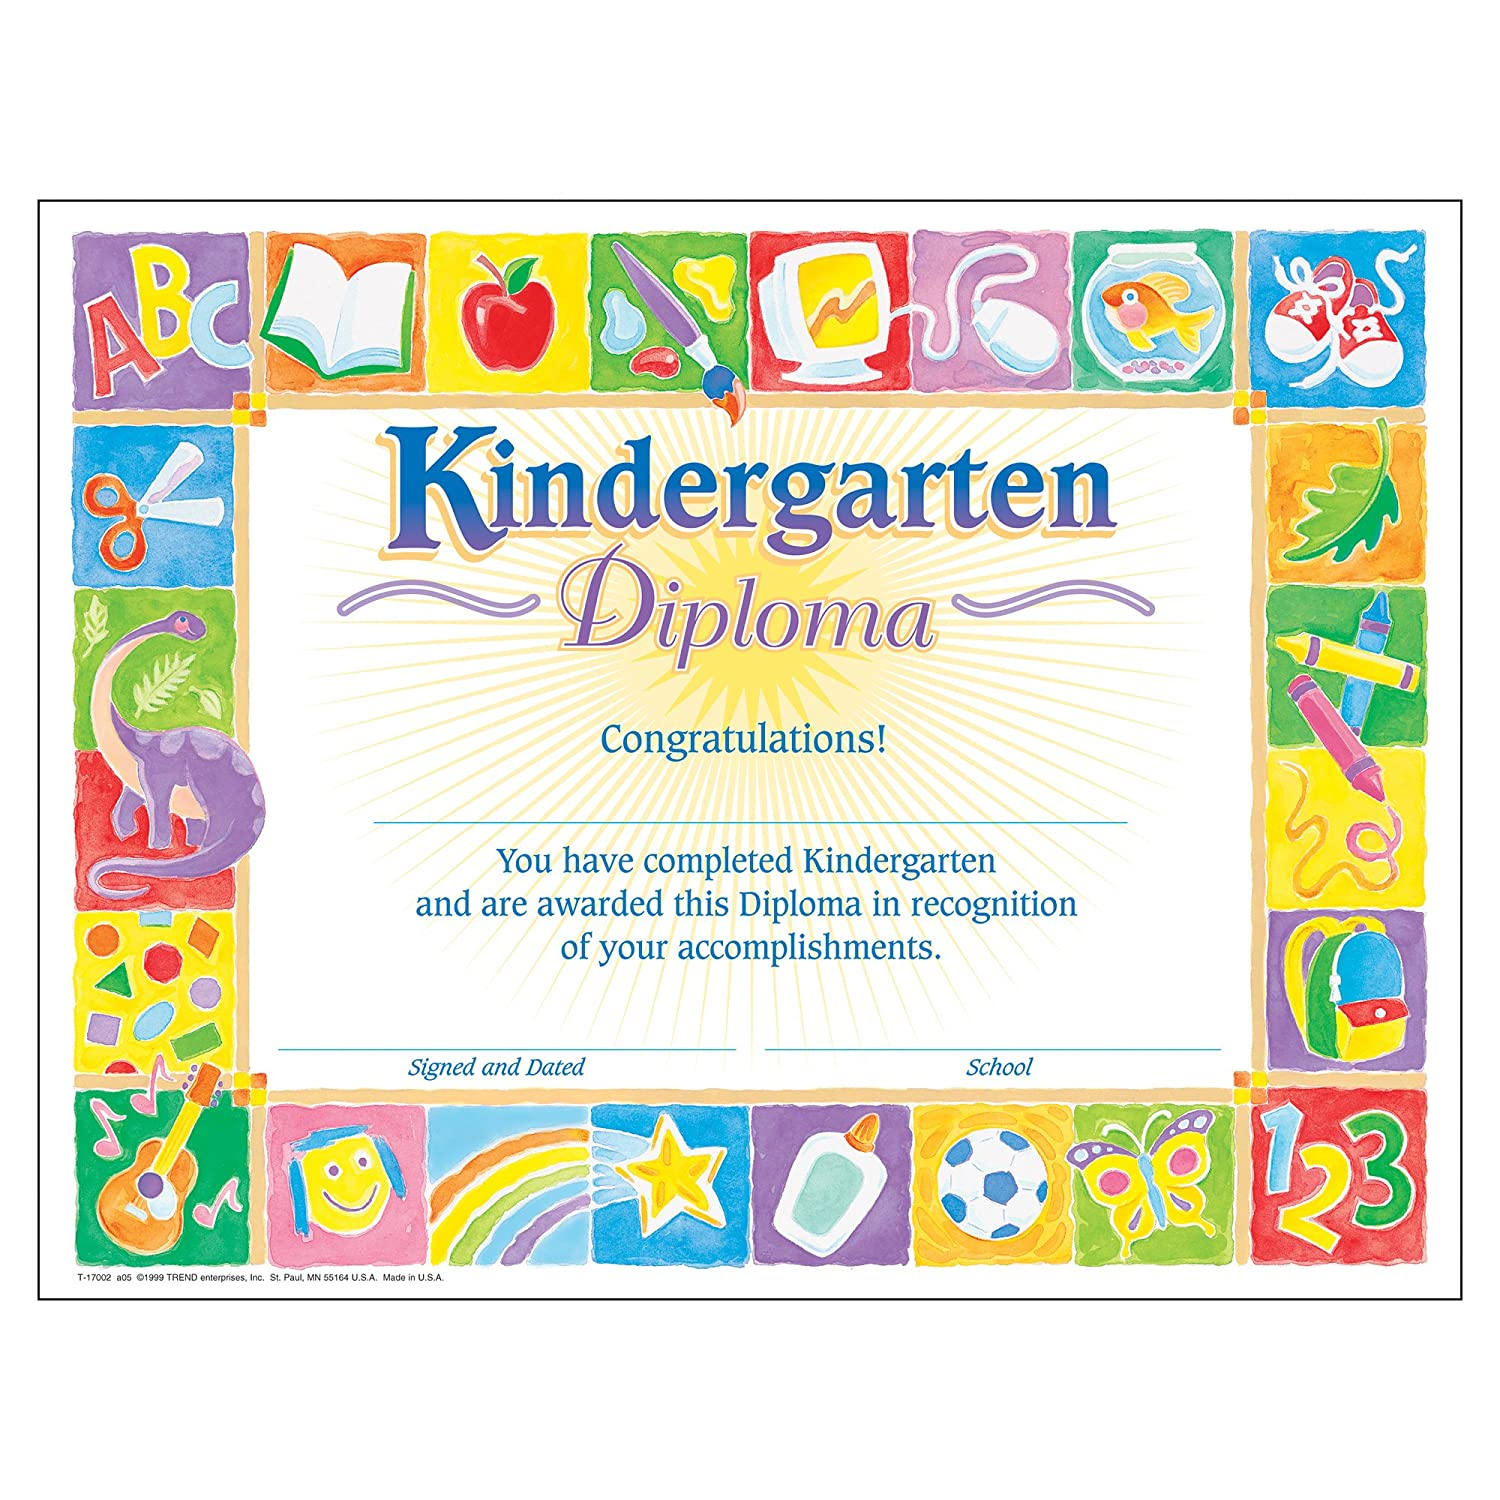 kindergarten graduation diploma  Amazon.com: TREND enterprises, Inc. Classic Kindergarten Diploma, 30 ...